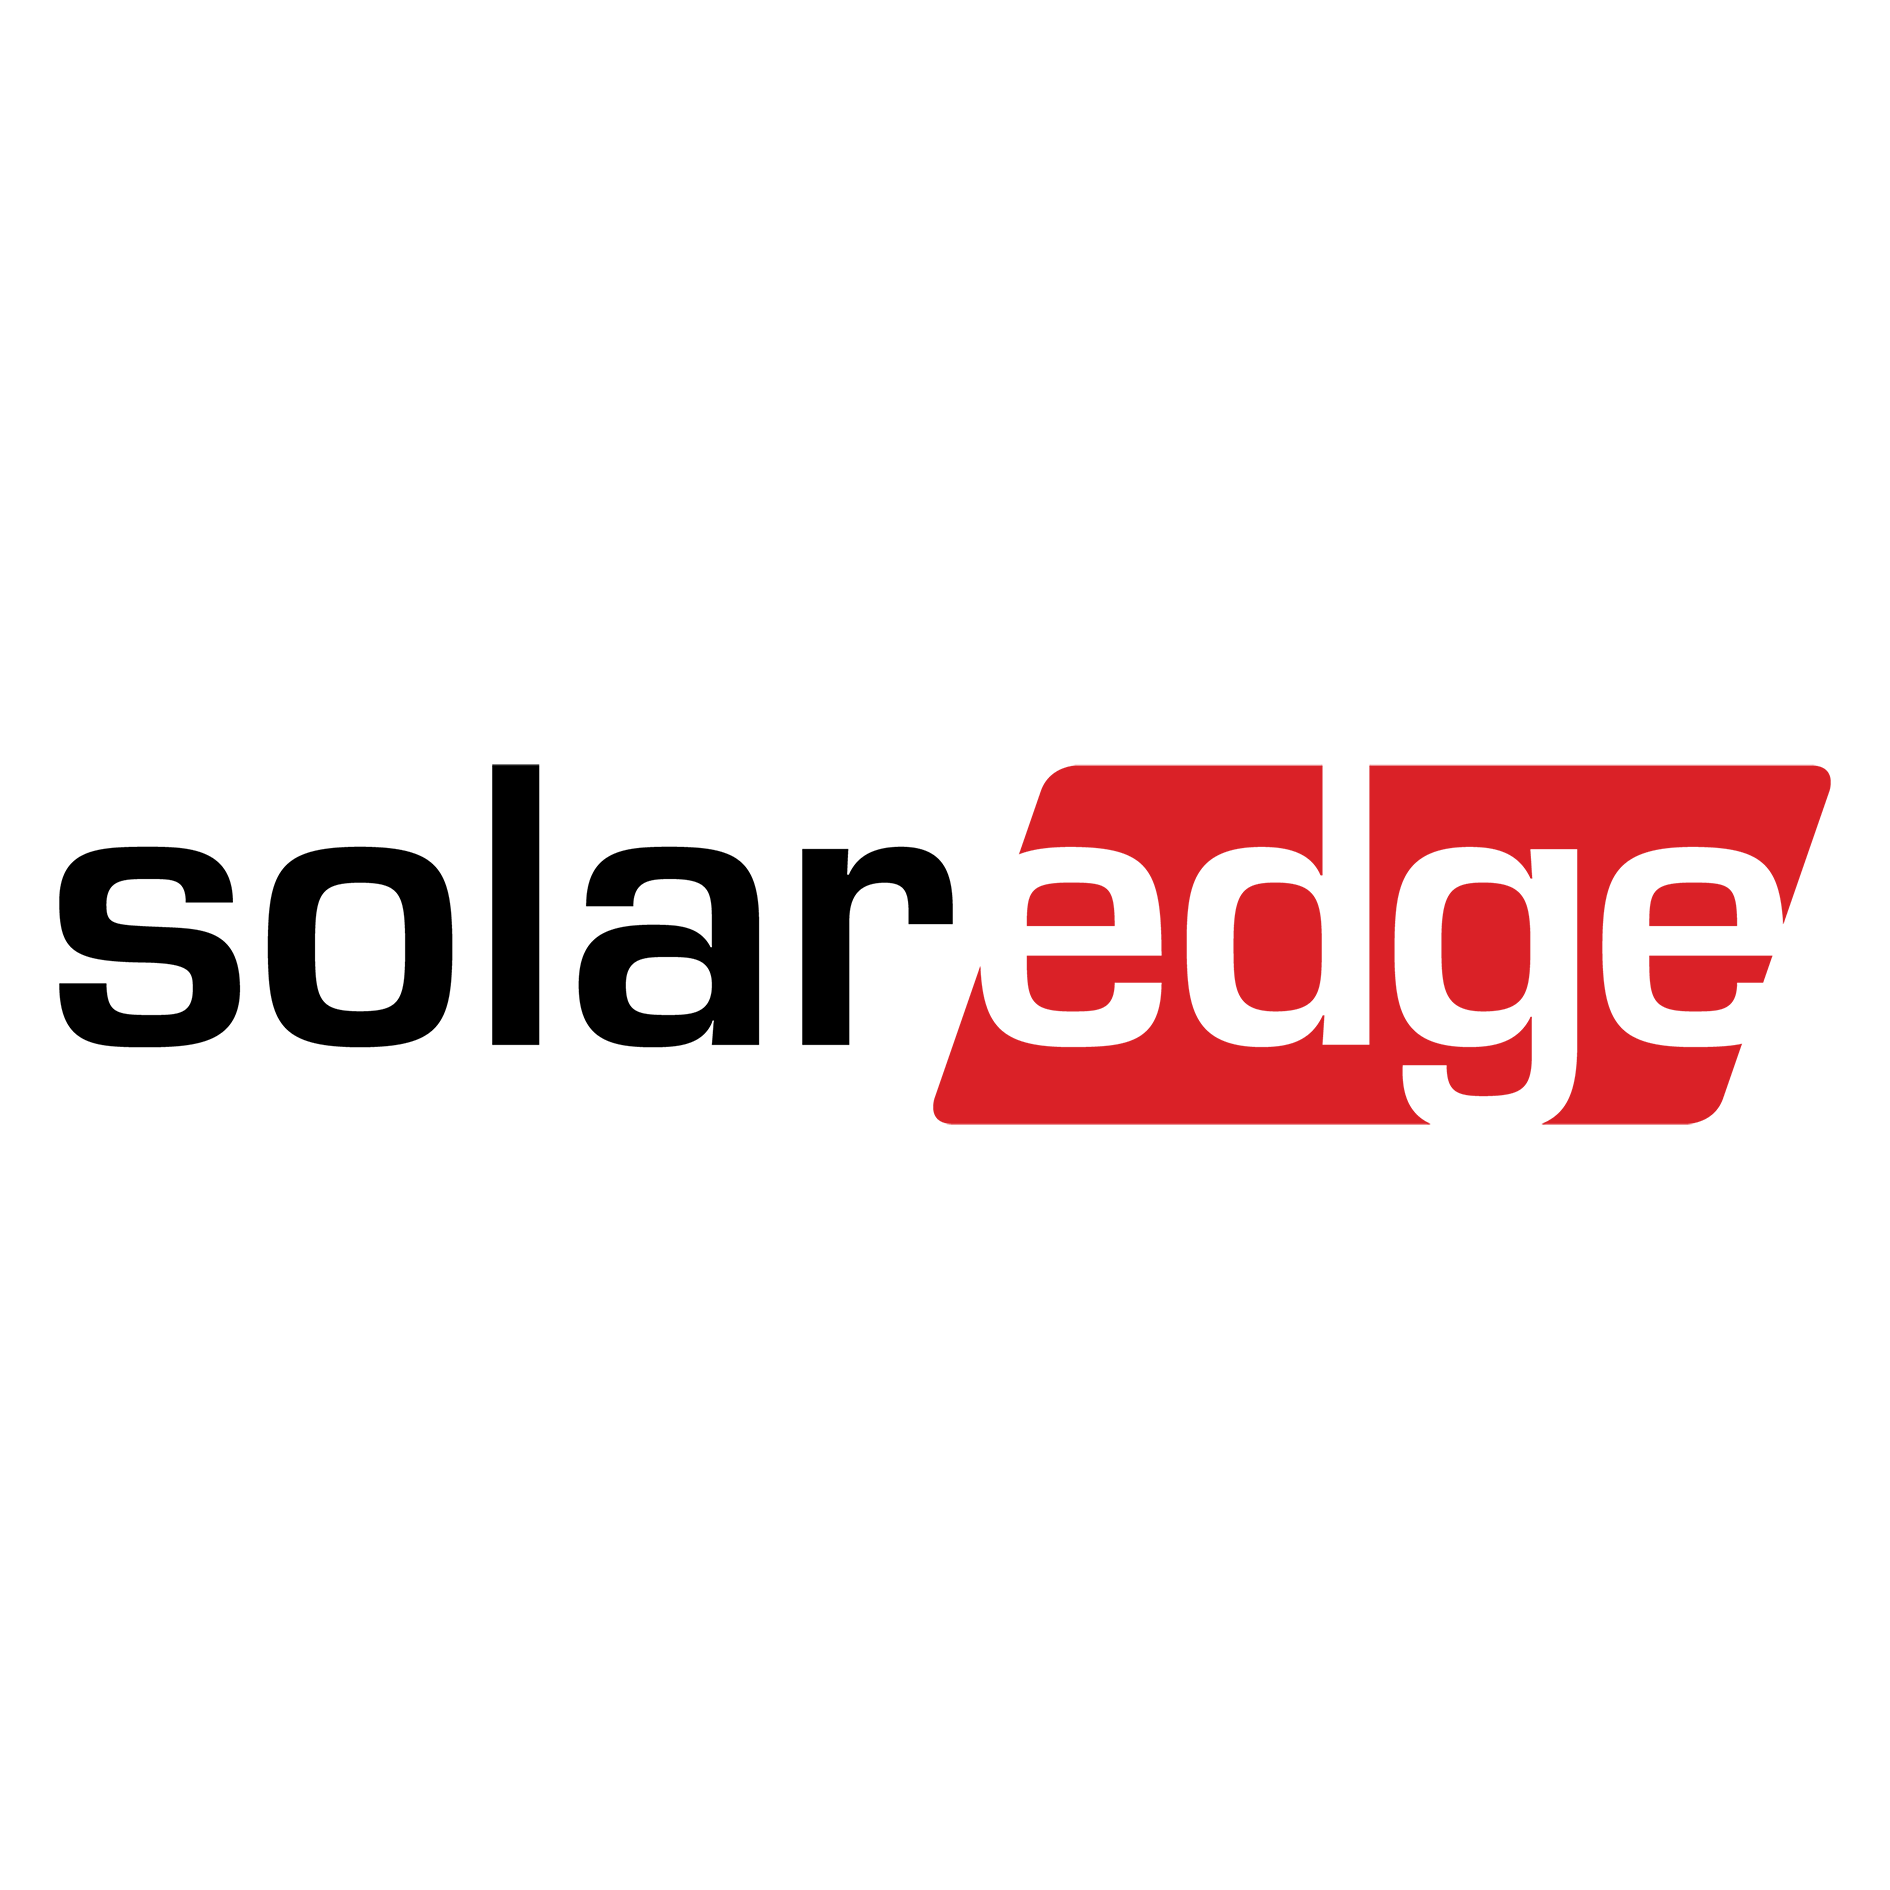 https://www.solaredge.com/fr/corporate/about-us